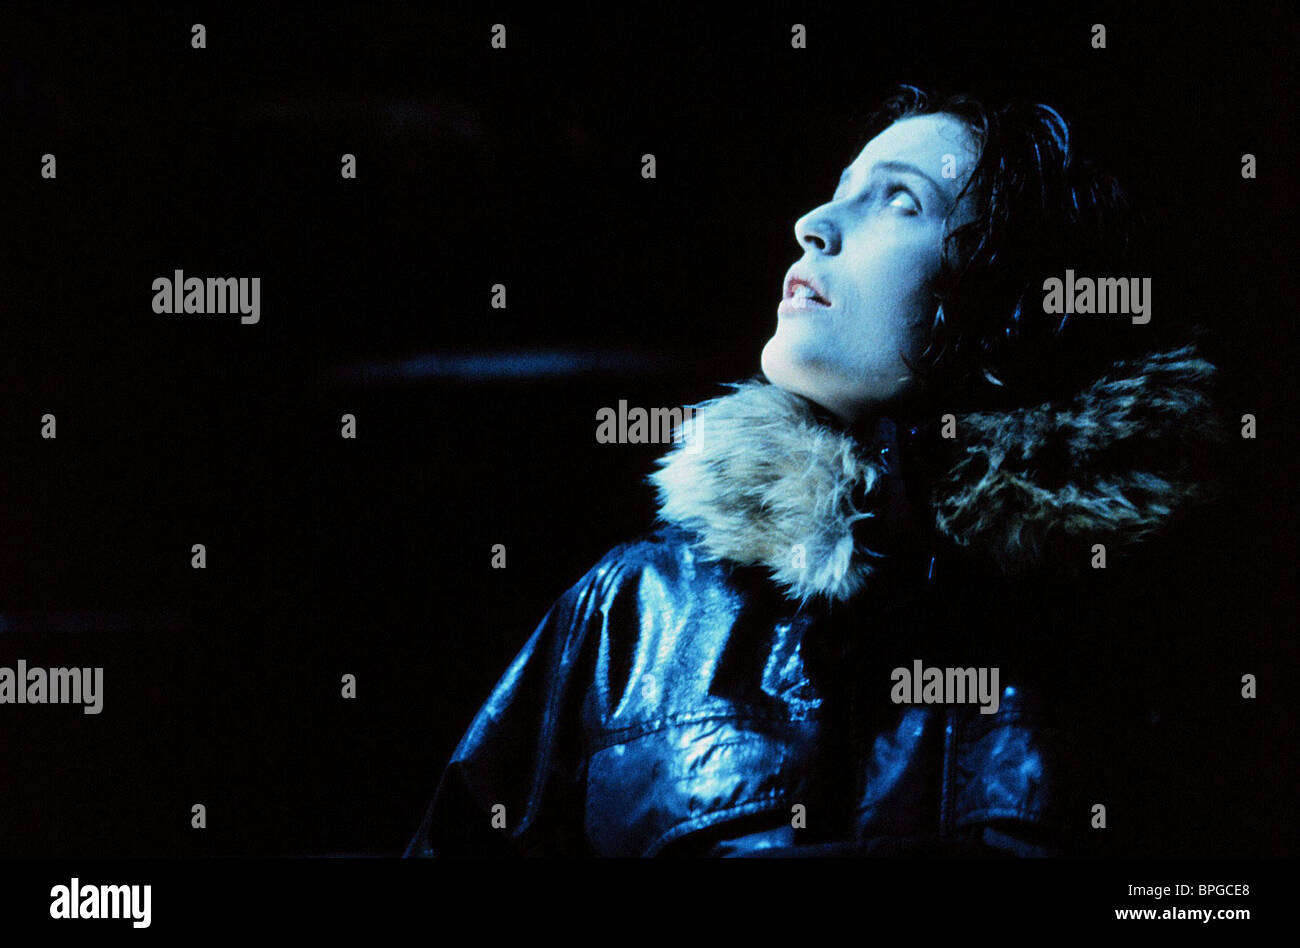 GILLIAN ANDERSON THE X-FILES: THE MOVIE (1998) - Stock Image